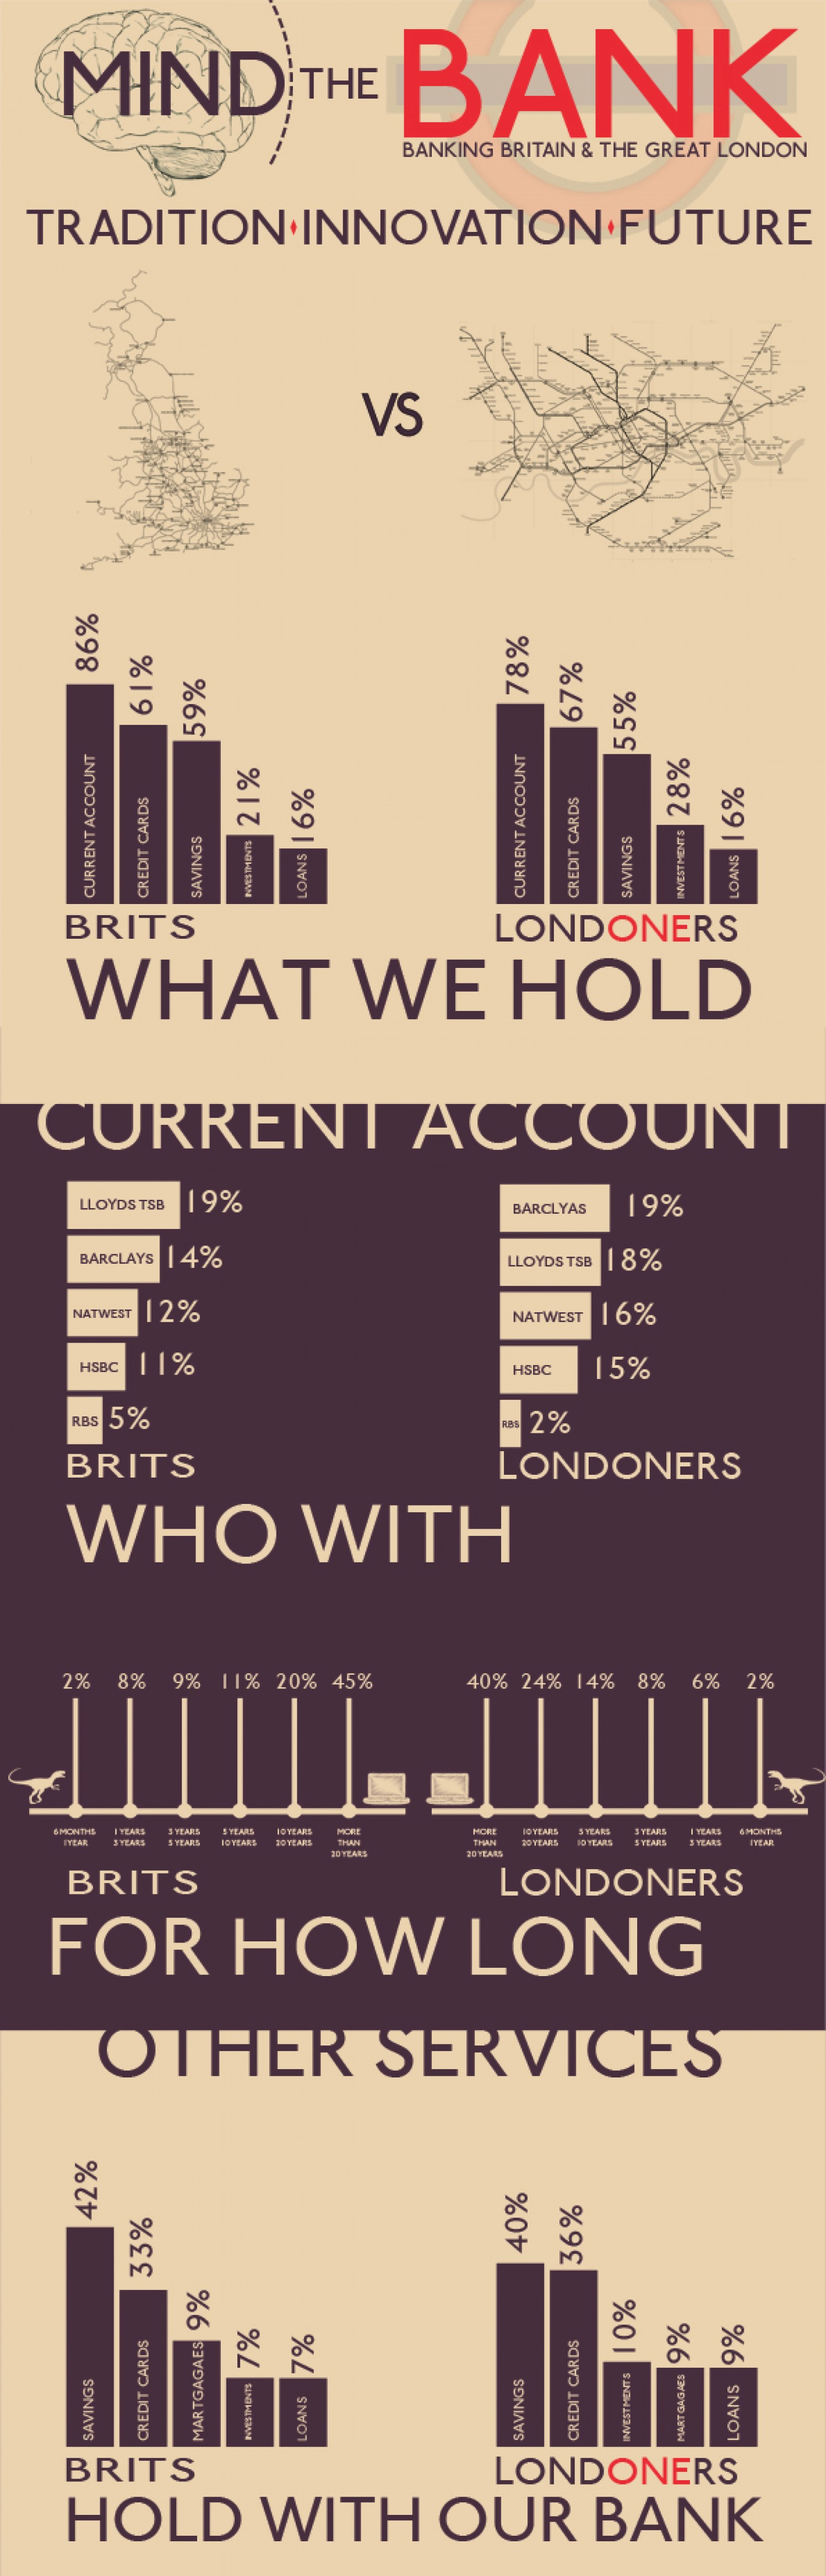 4. Banking UK vs. LONDON